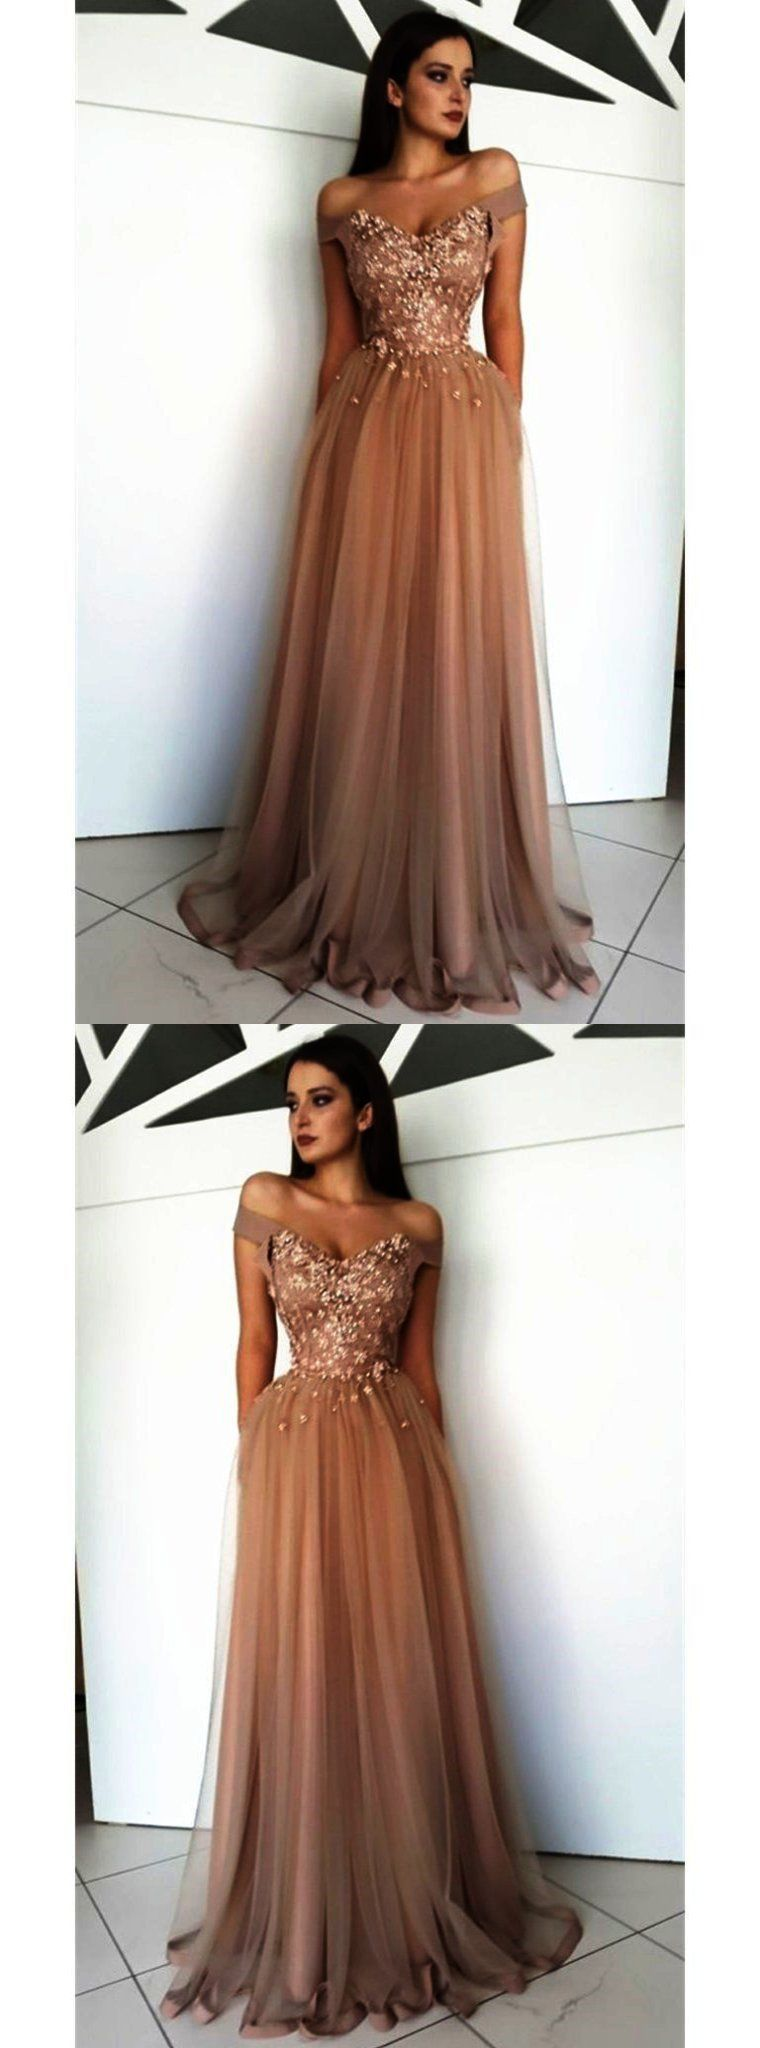 Prom Dresses Short And Tight after Prom Dresses 2019 Sherri Hill is part of Prom dresses -